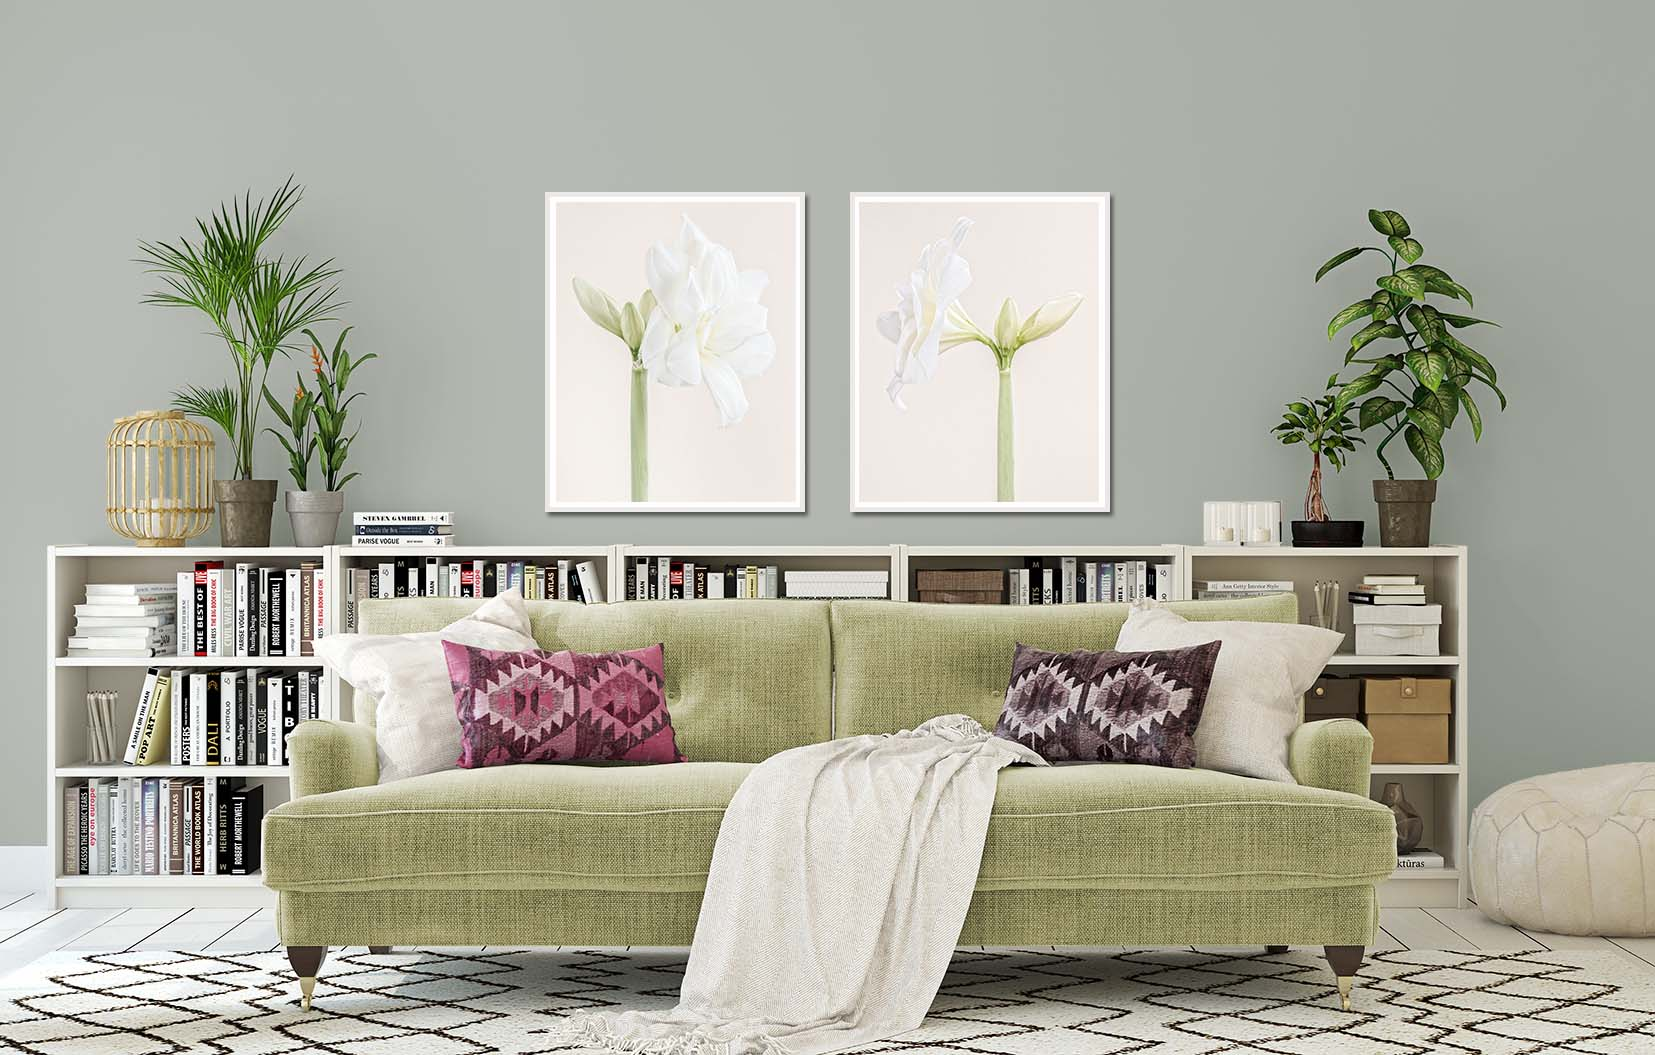 """Two prints of White Nymph I + II - white Hippeastrum """"White Nymph"""" (commonly known as an Amaryllis). Limited edition floral prints by fine art photographer Paul Coghlin"""